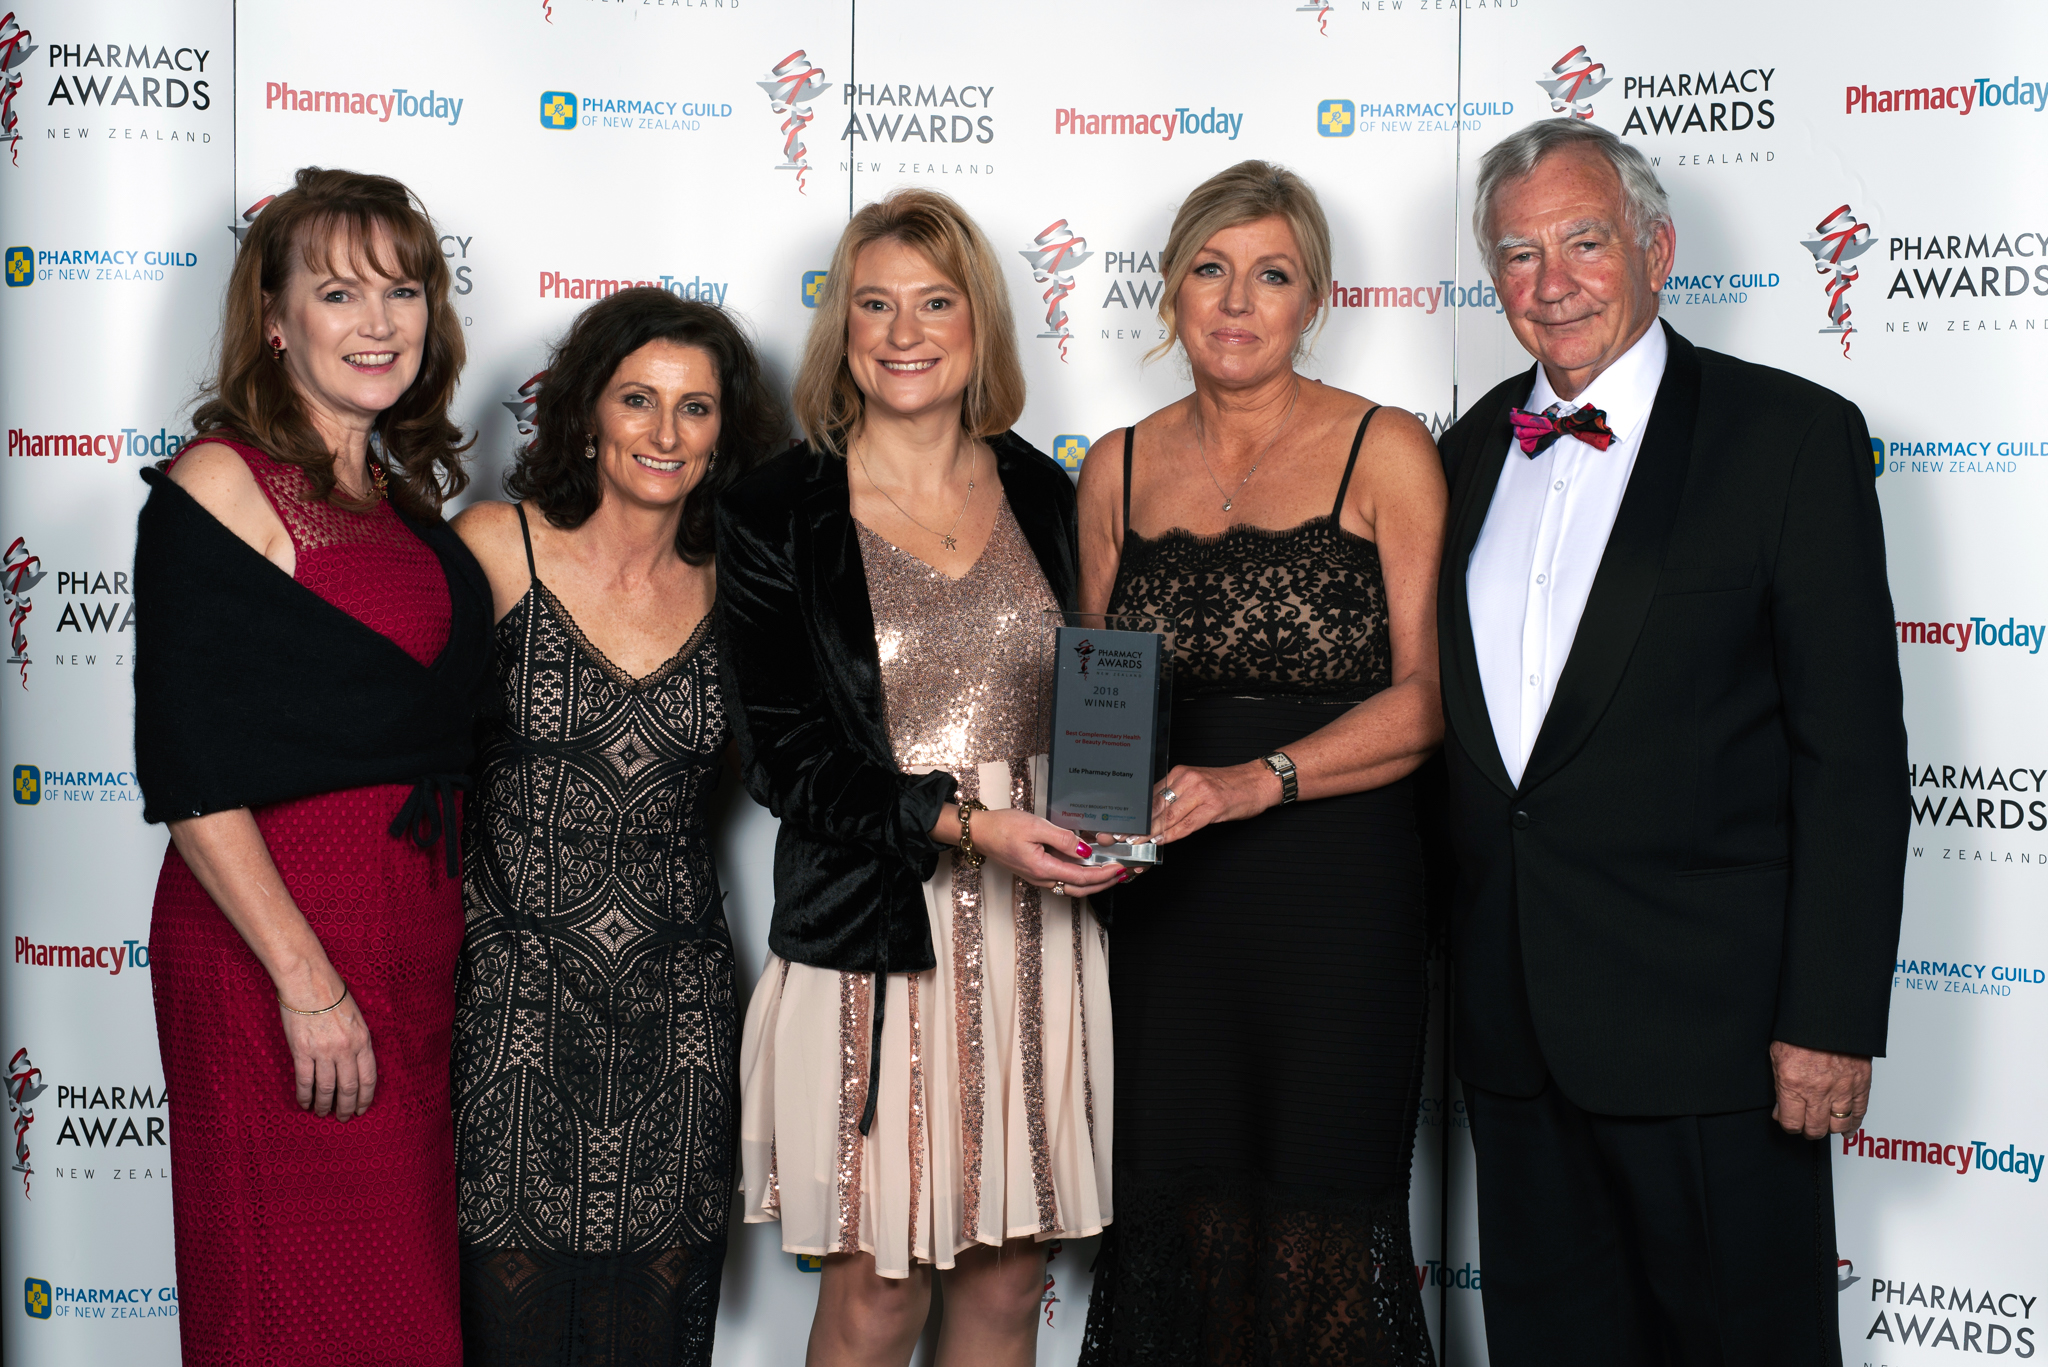 Pharmacy-Awards-2018__0JC9103_lowres